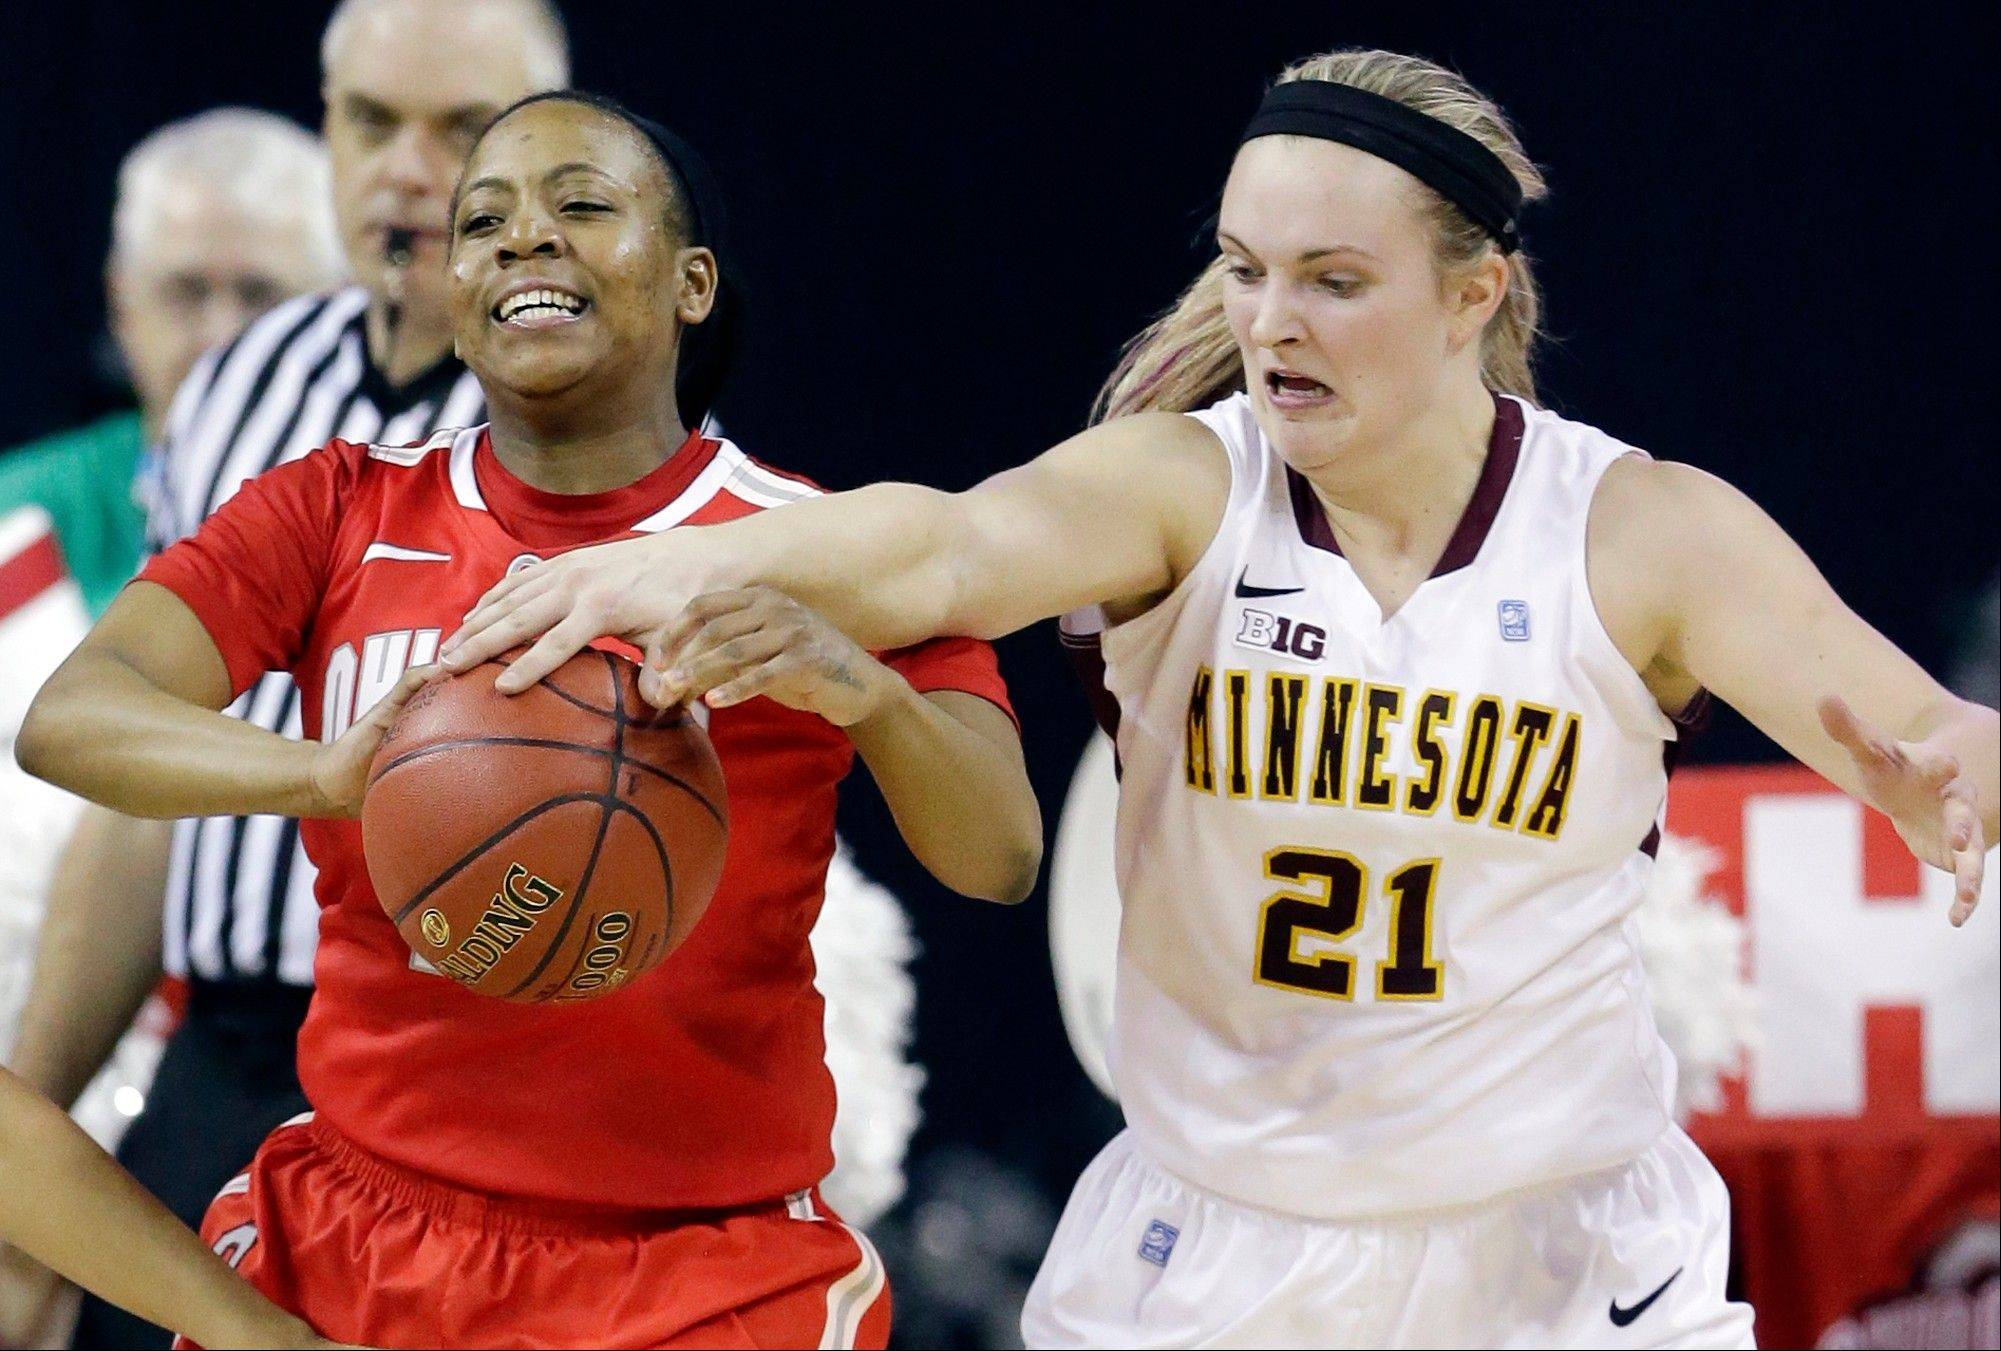 Ohio State guard Ameryst Alston, left, looks to a pass as Minnesota guard Sari Noga guards during the second half of an NCAA college basketball game in the Big Ten Conference women�s tournament in Hoffman Estates Thursday.